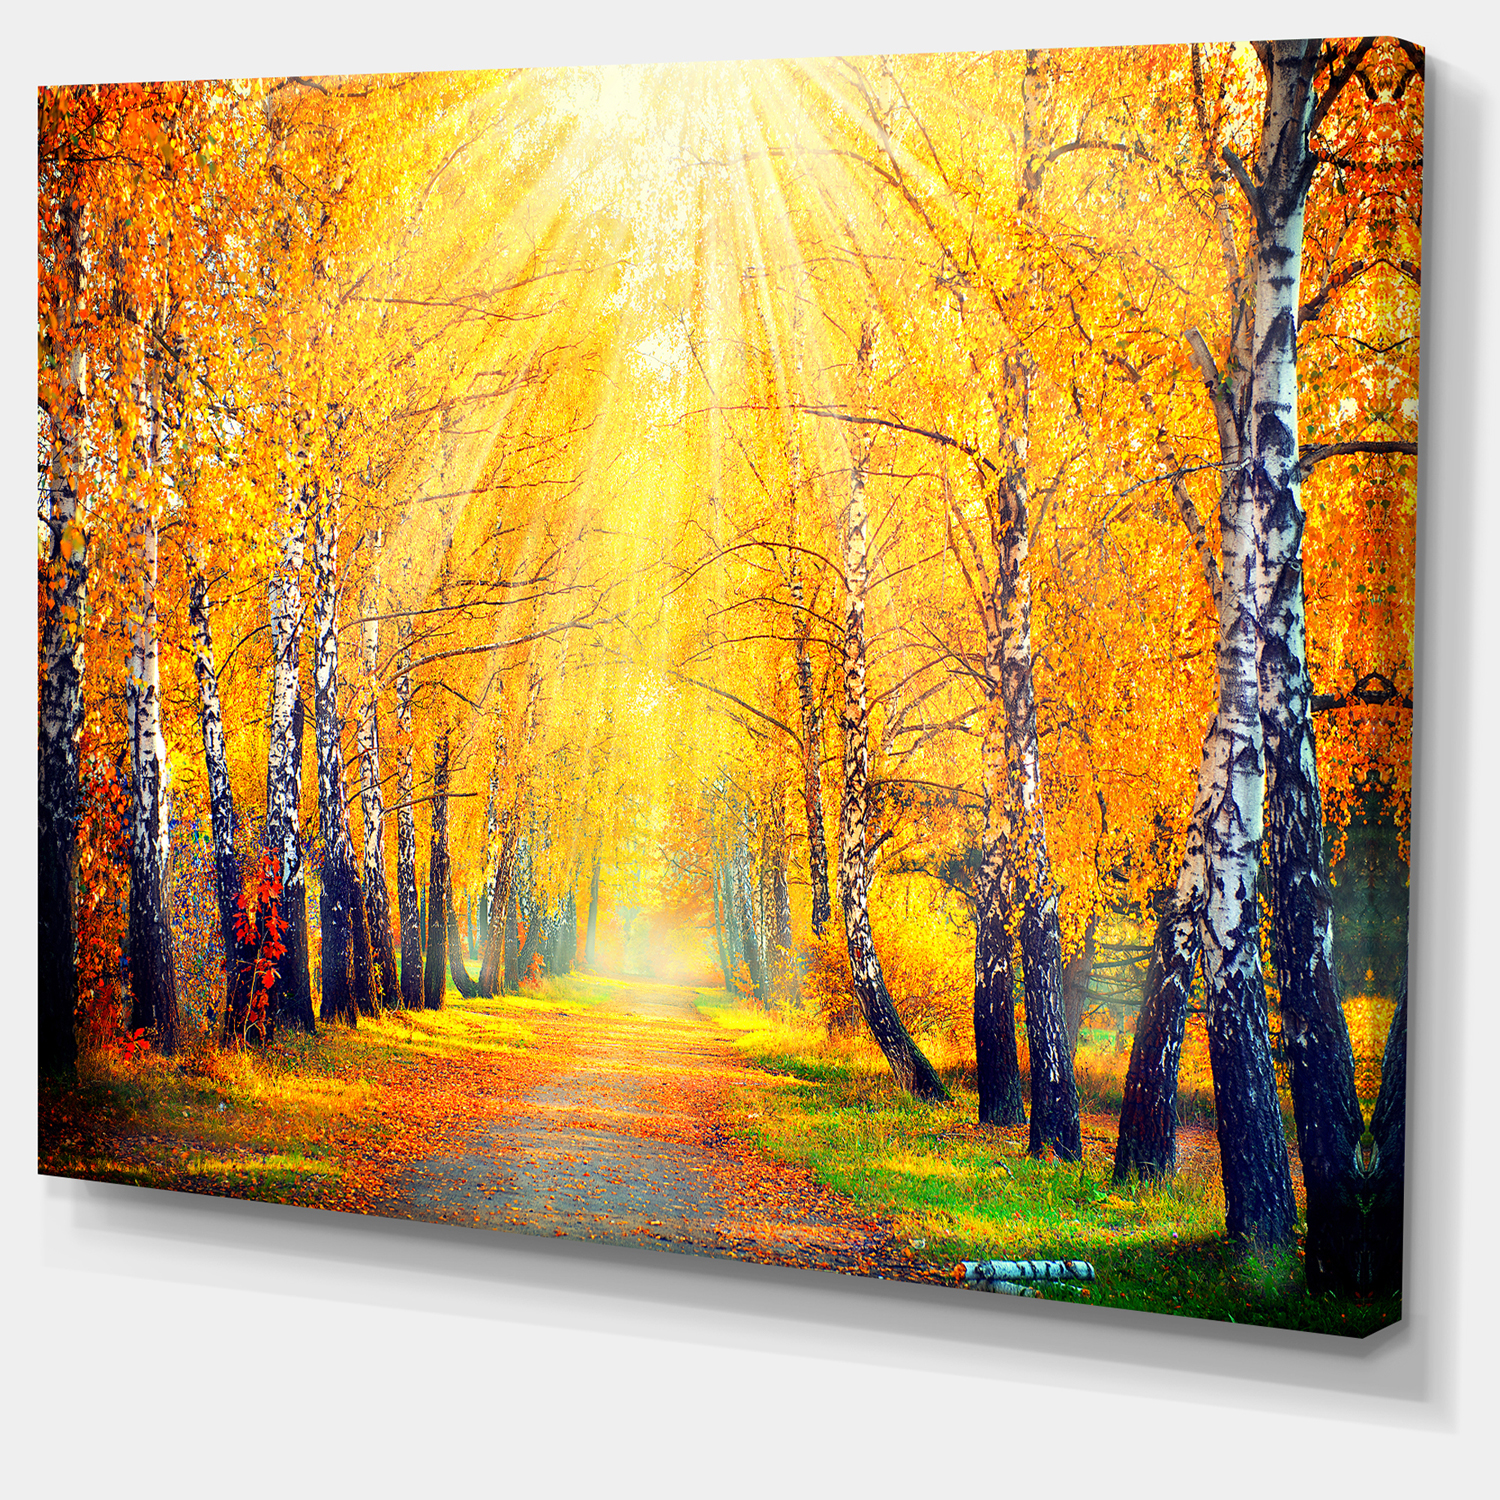 Yellow Autumn Trees in Sunray - Large Landscape Canvas Art Print - image 3 of 4